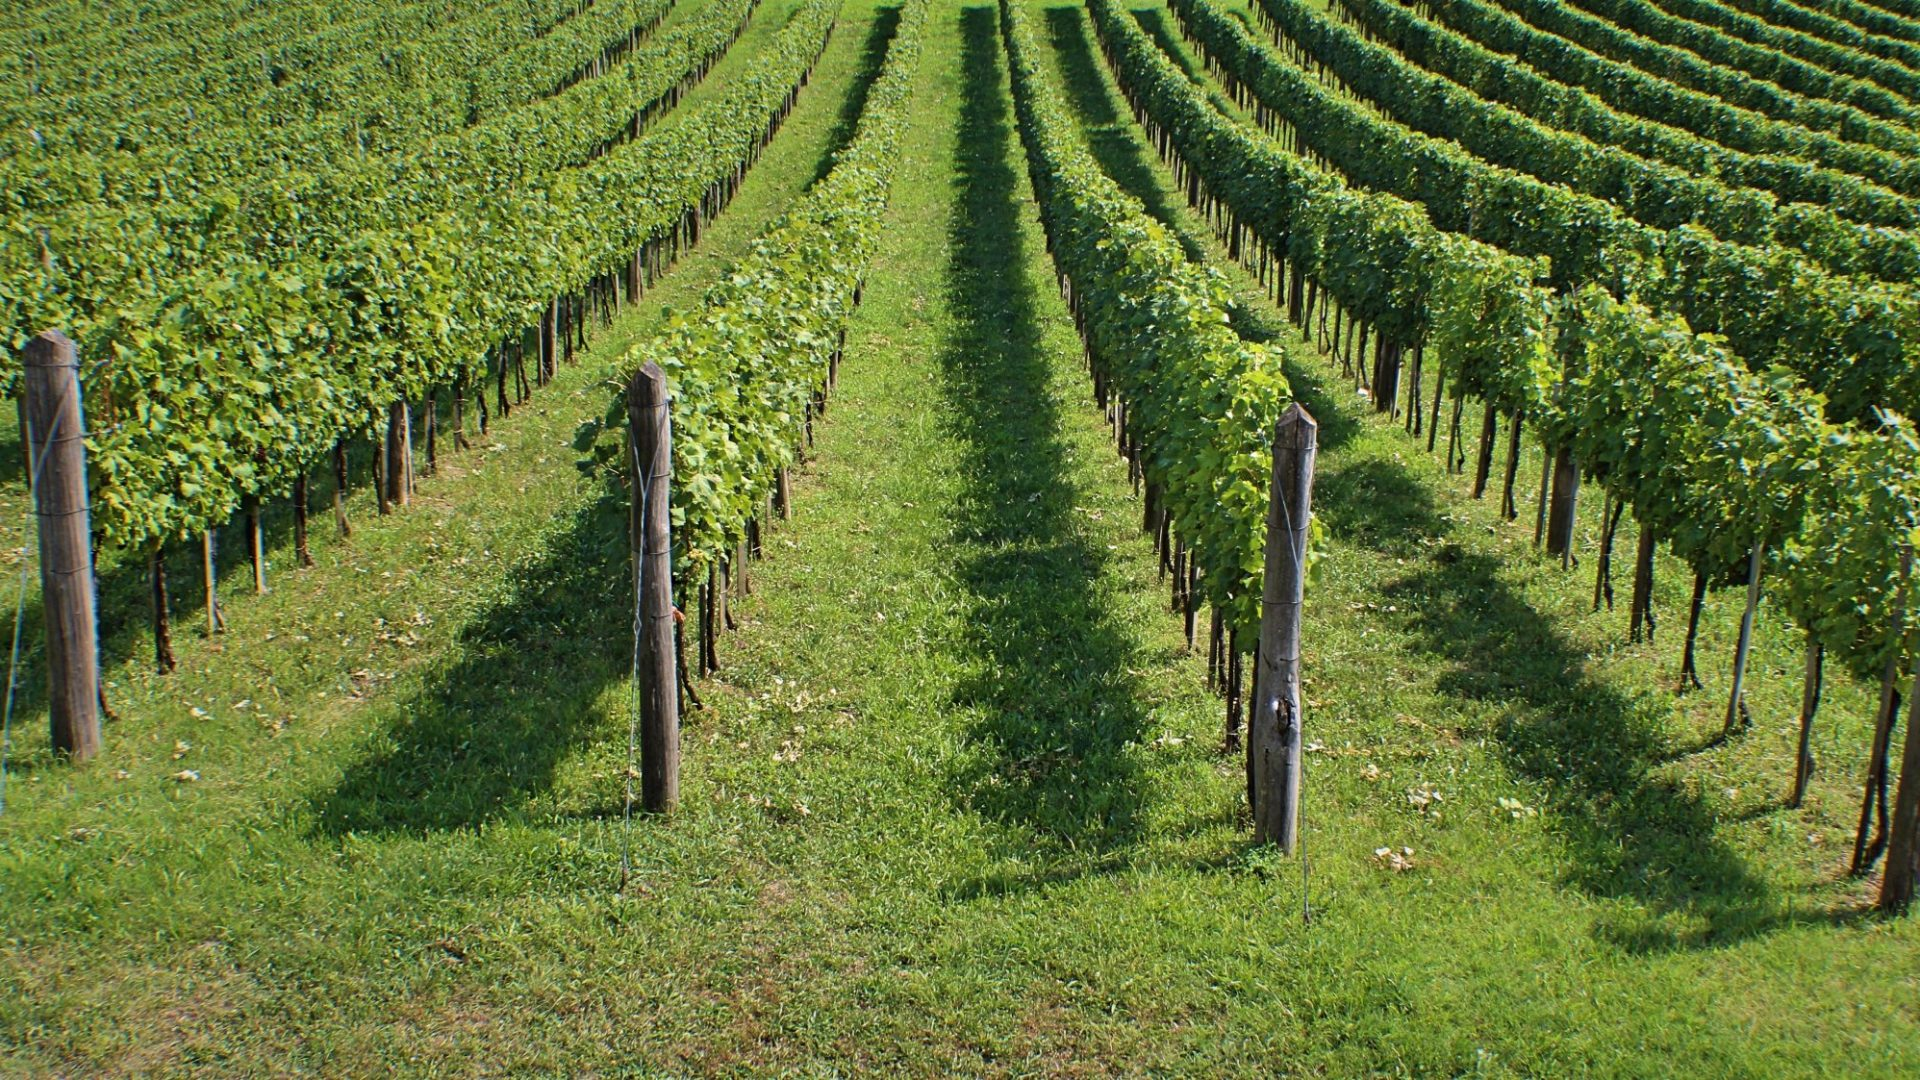 vineyards-2014906